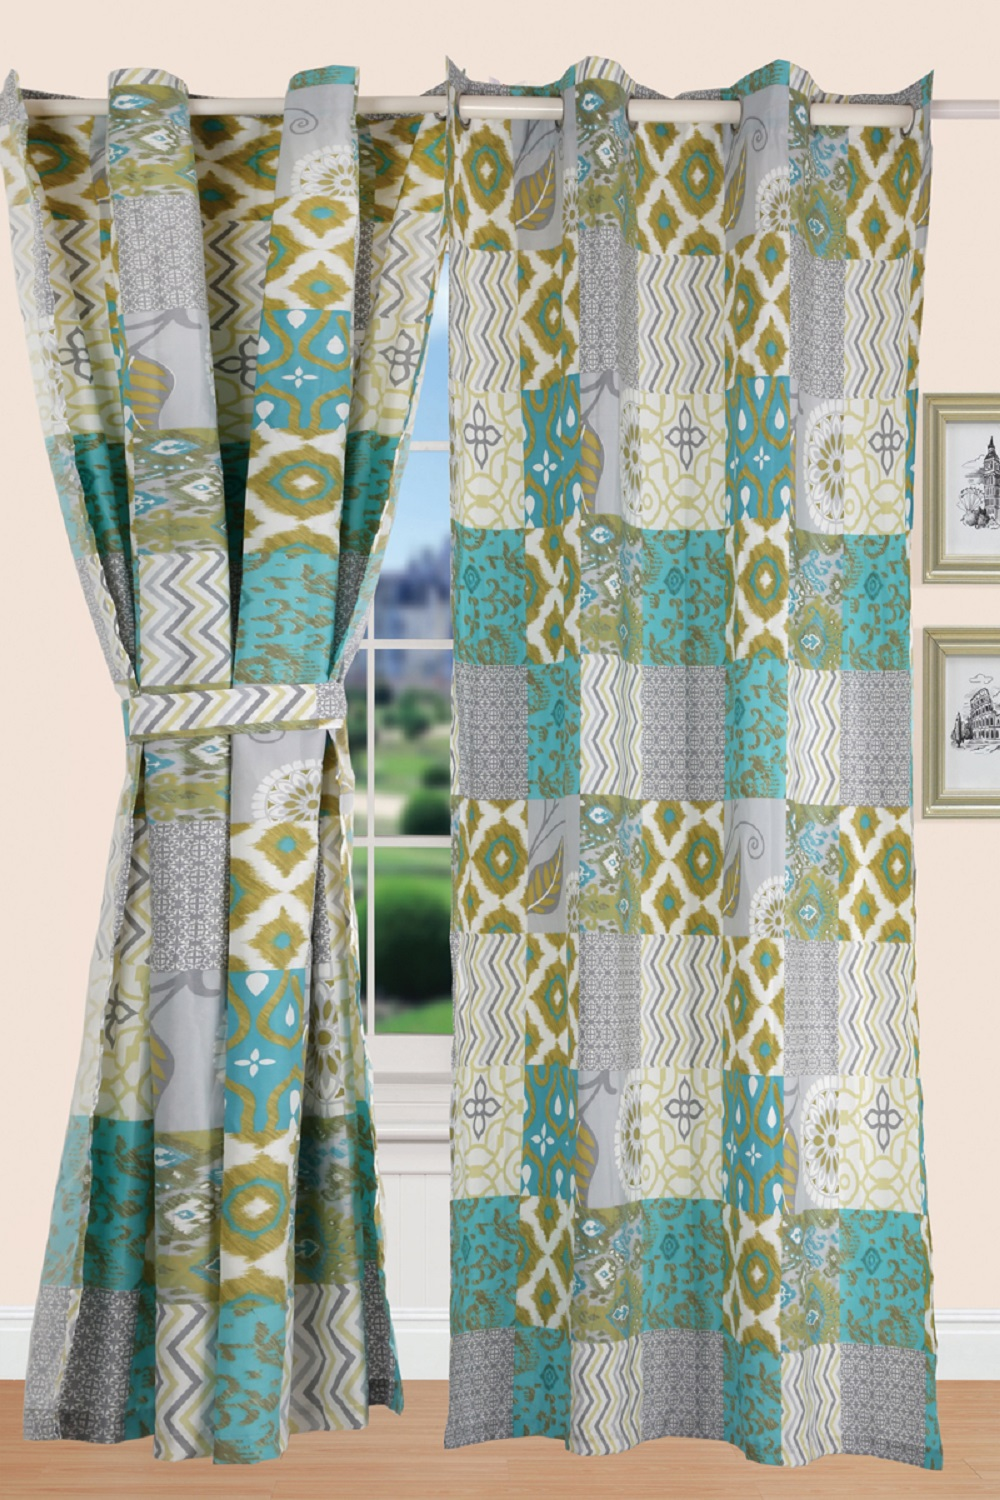 All American Collection New 3pc Printed Modern Geometric Bedspread Coverlet by American Linen & Rugs